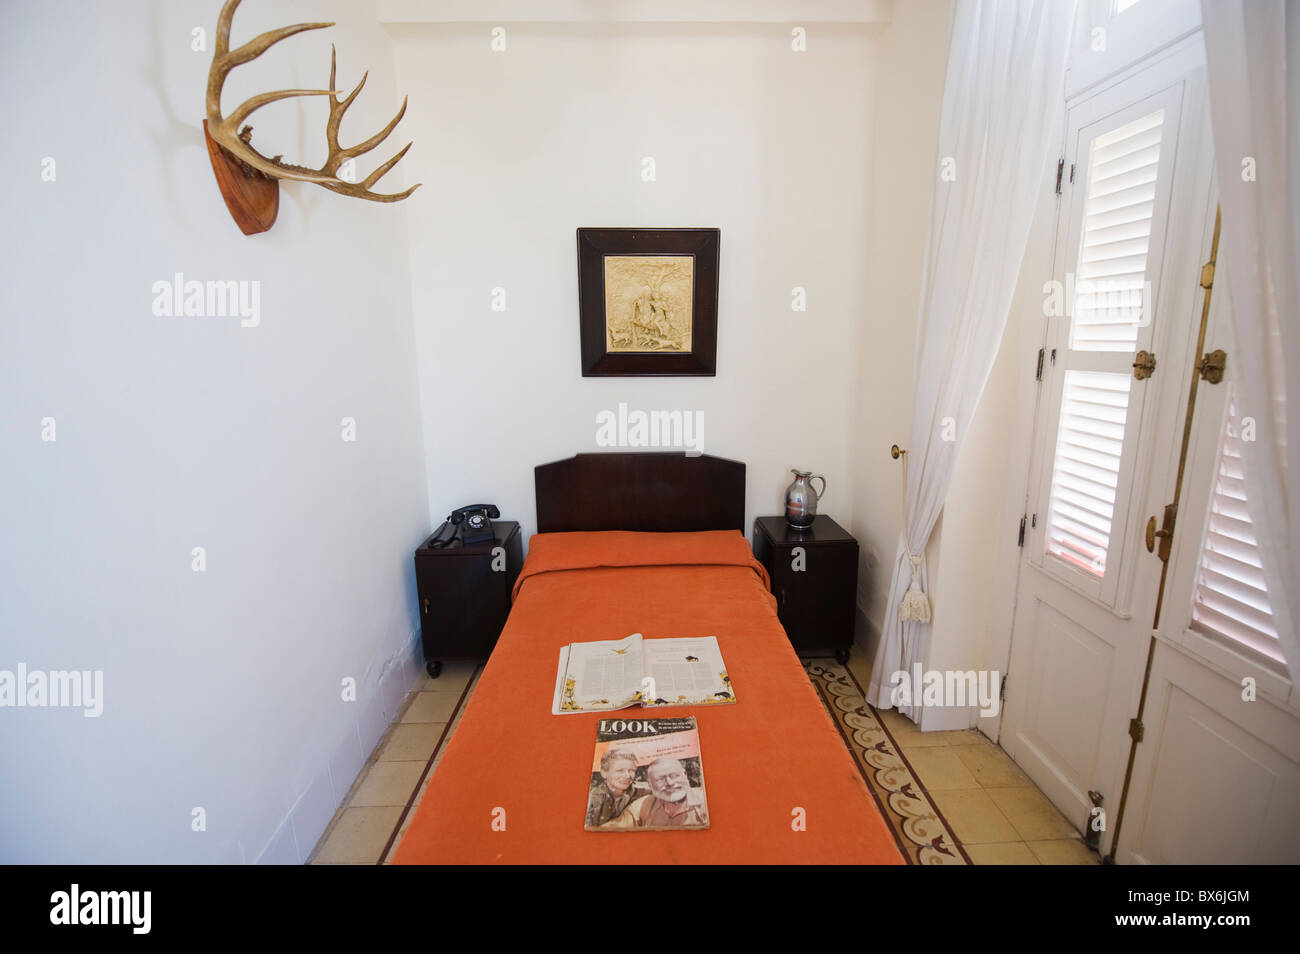 Ernest Hemingway's room, Hotel Ambos Mundos, Habana Vieja (Old Town), UNESCO World Heritage Site, Havana, Cuba, Stock Photo